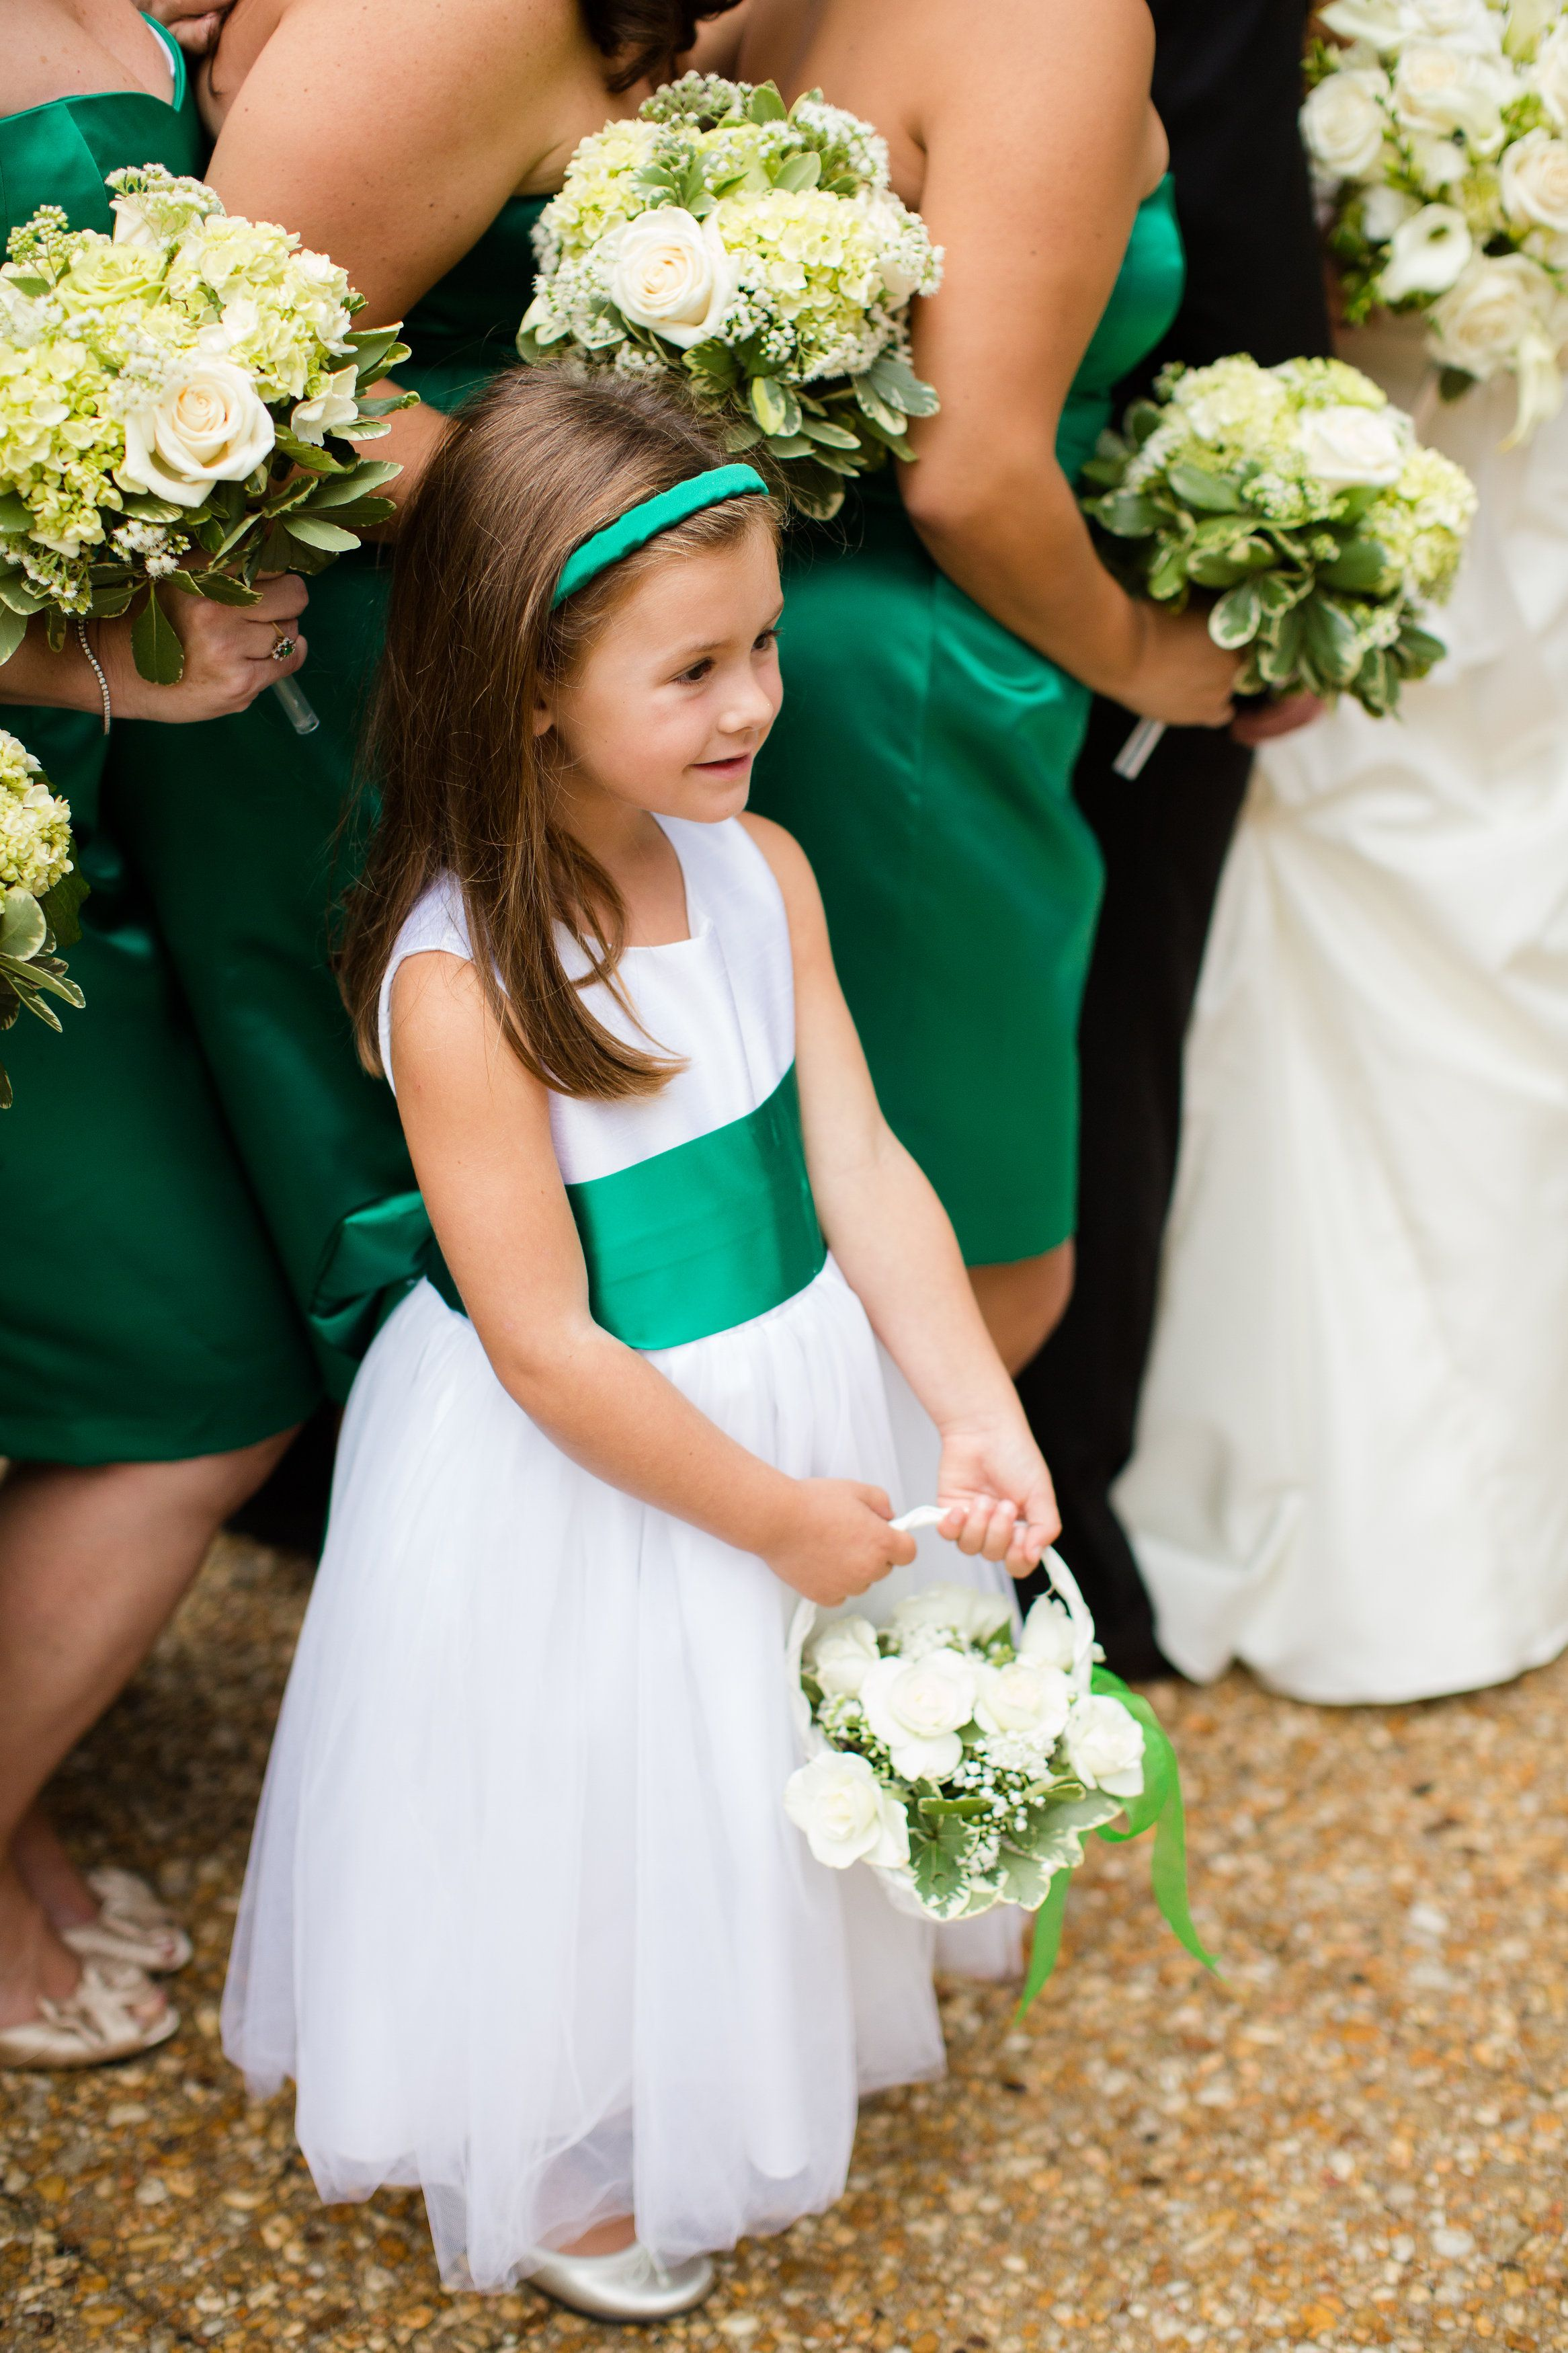 An Emerald Green Sash For The Flower Girl To Match The Bridesmaid